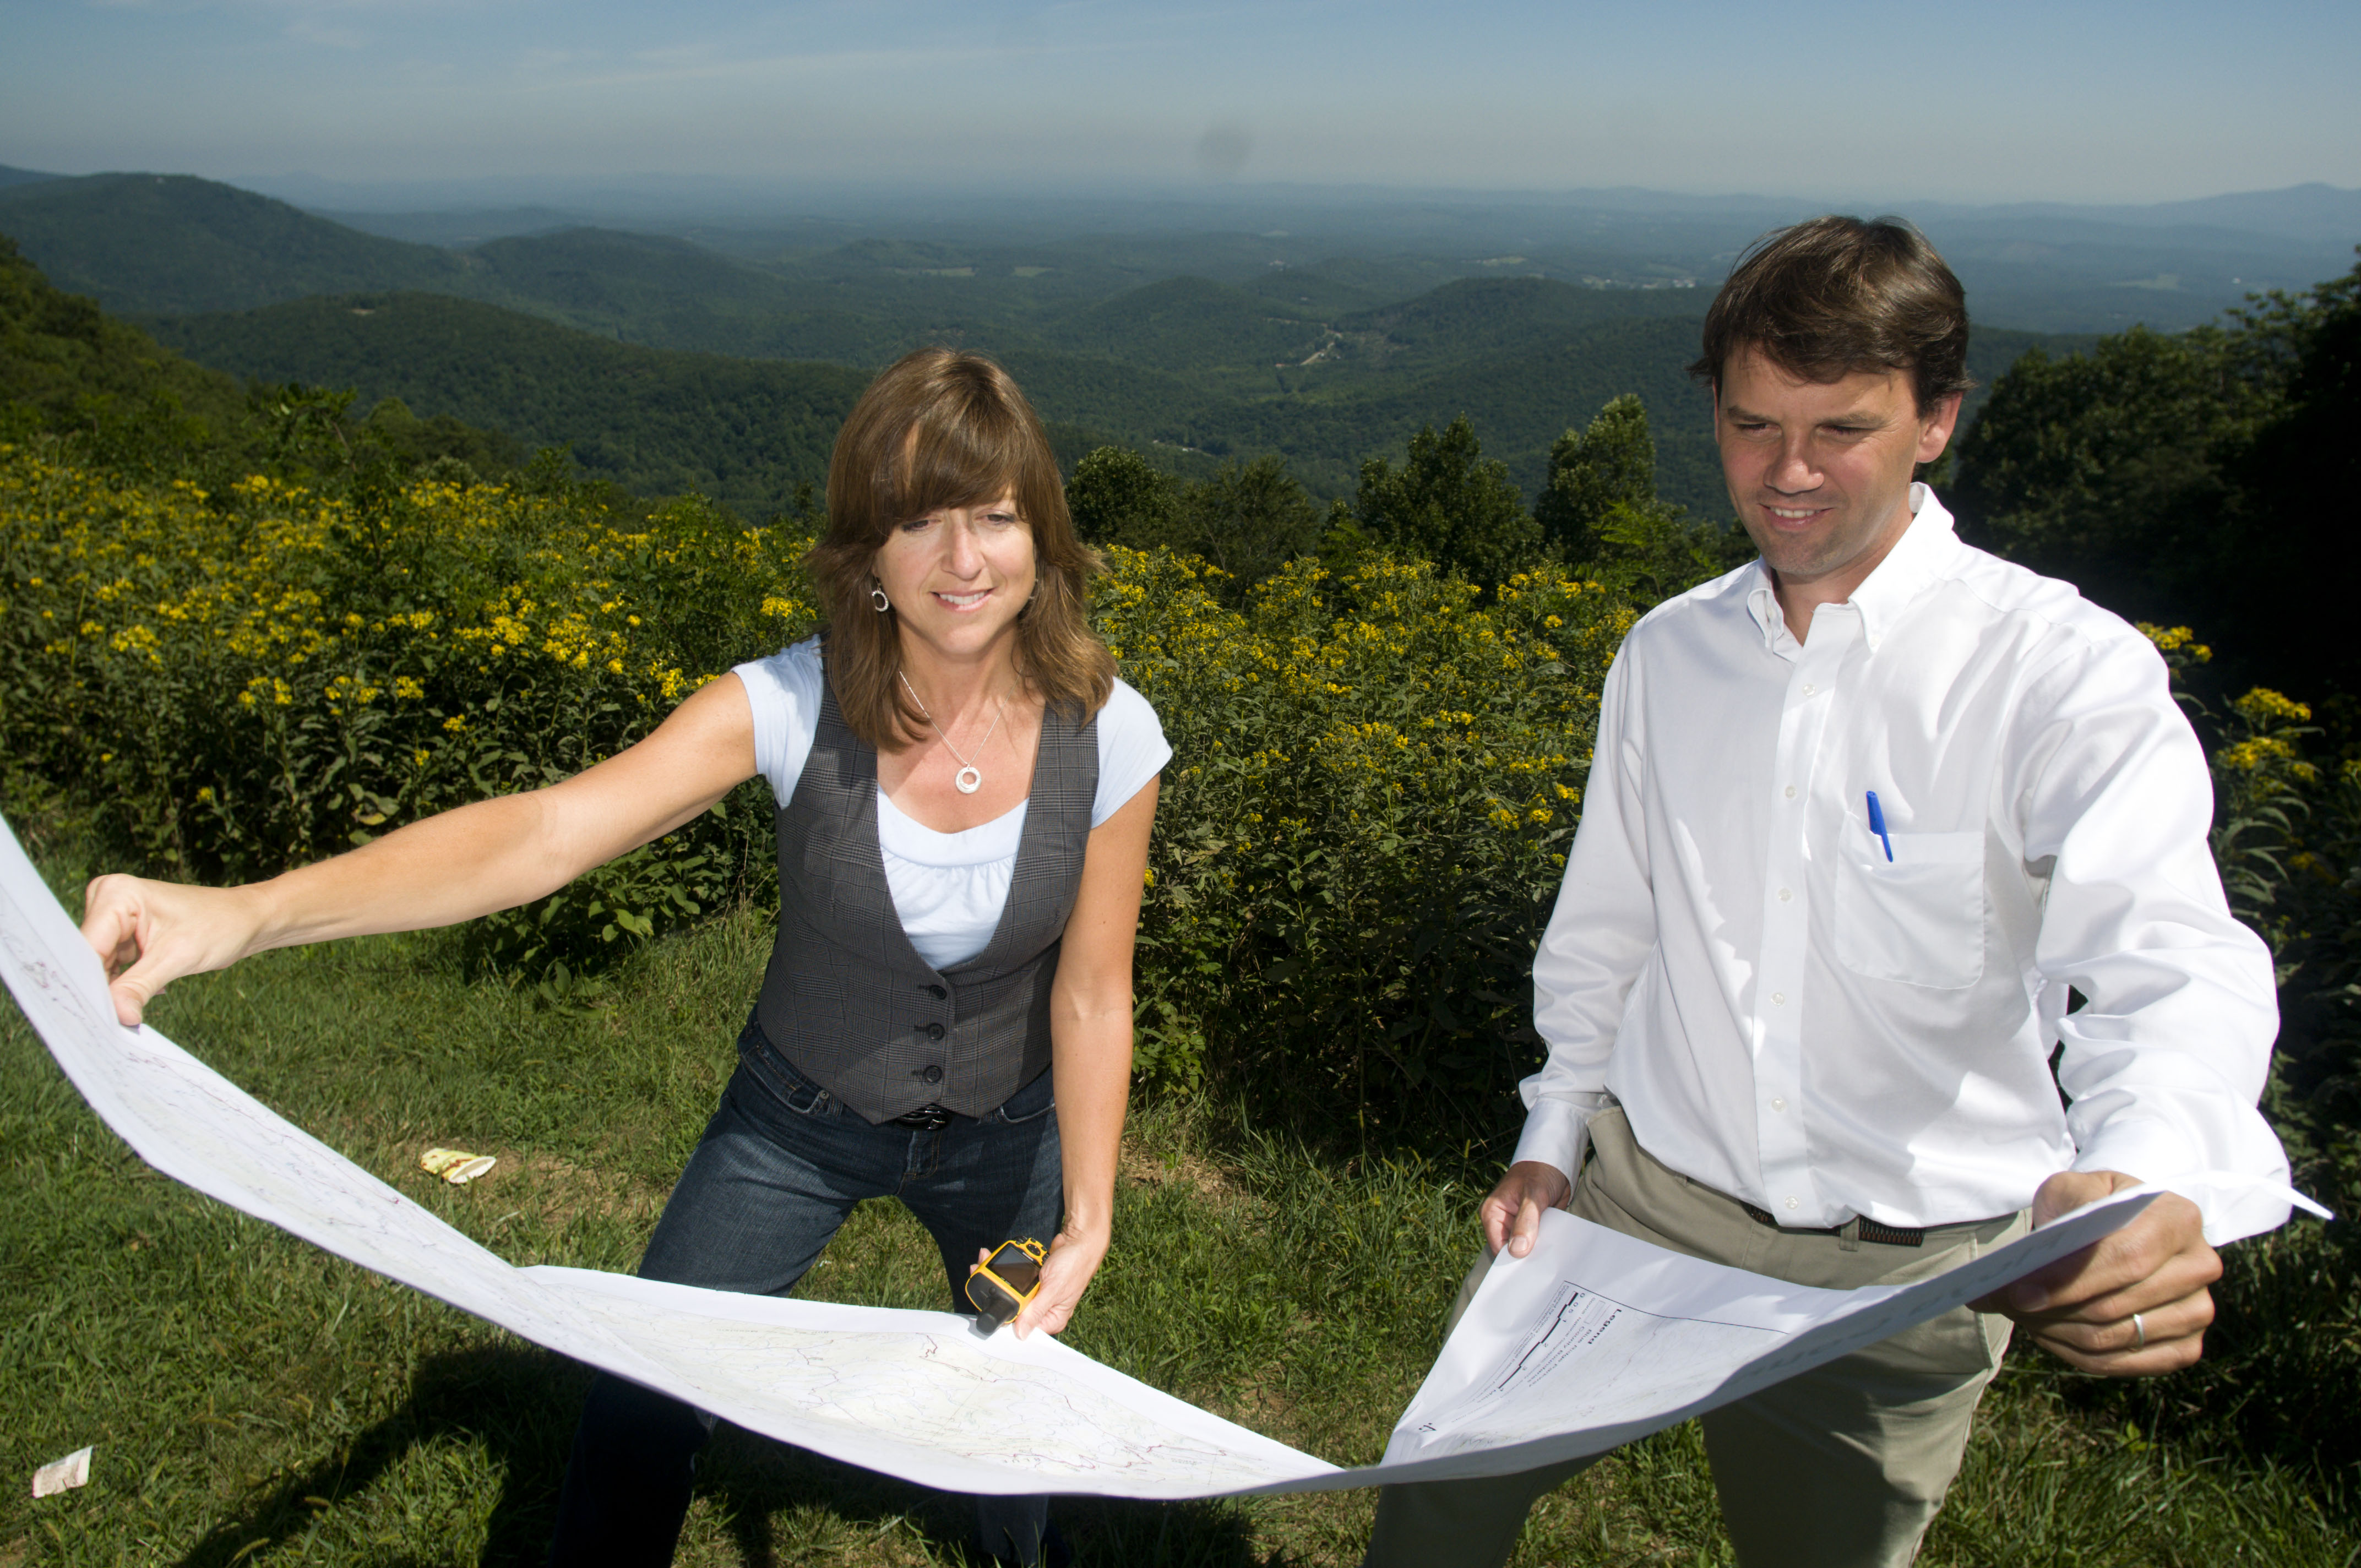 Nancy McGehee (left) and John McGee review a survey of the Rocky Knob area of the Blue Ridge Parkway.